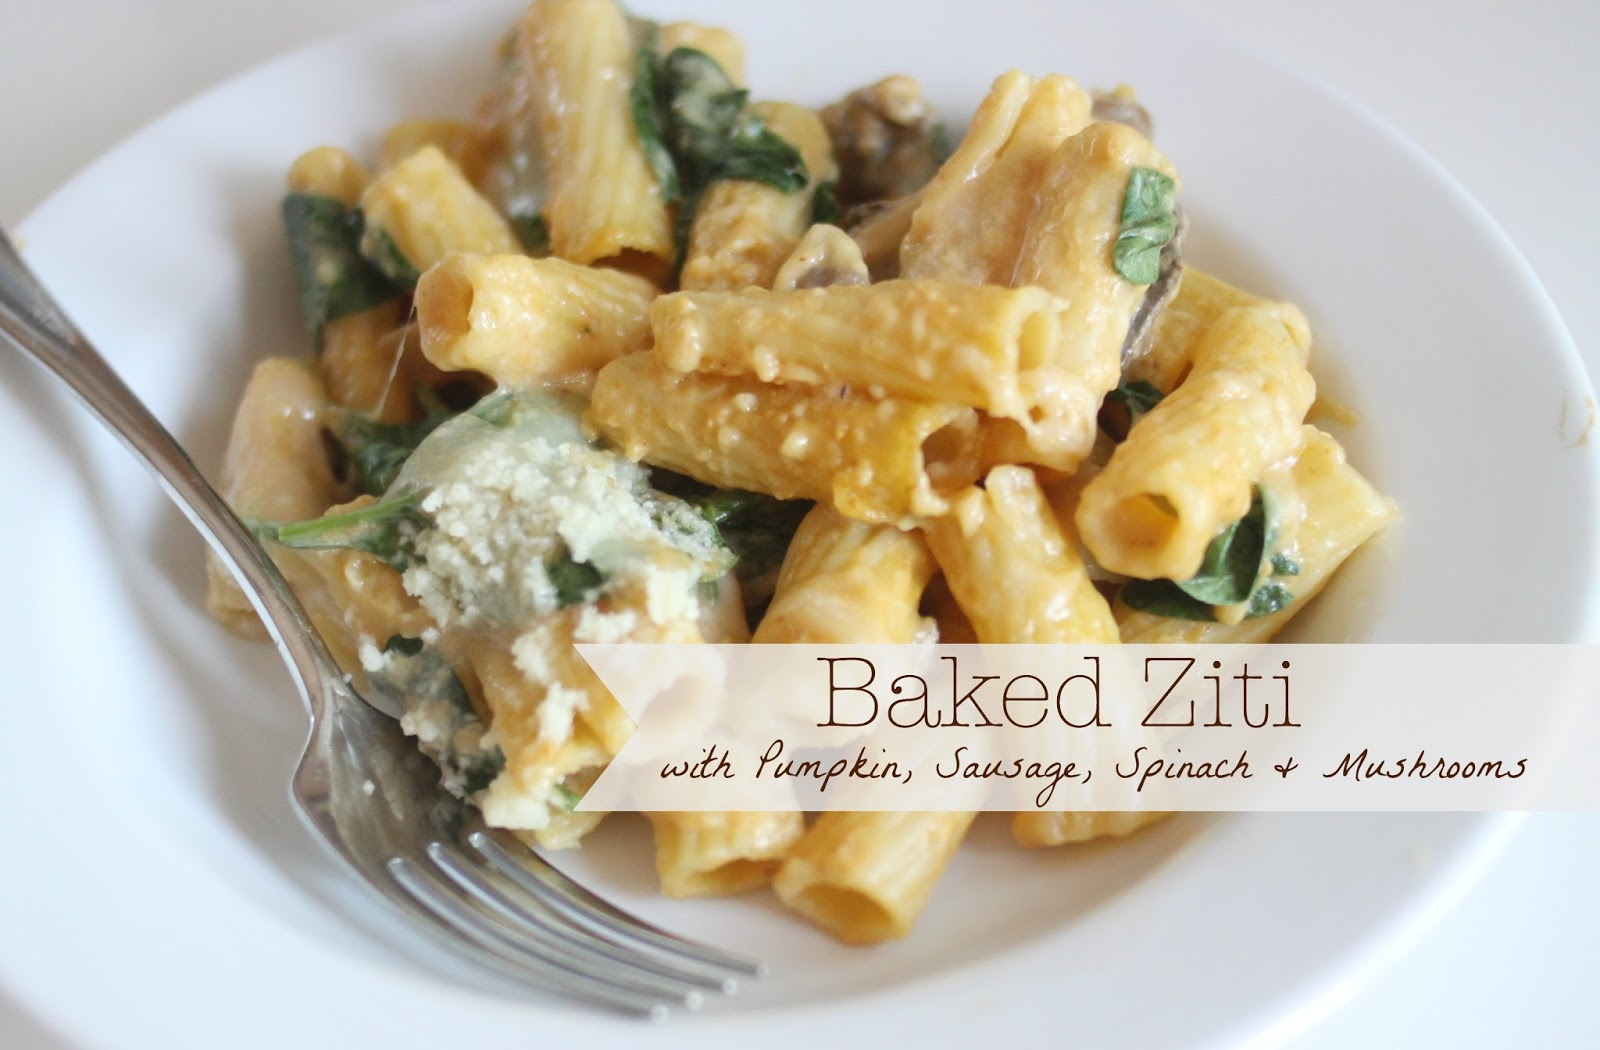 ... baked ziti with mushrooms and spinach low fat spinach ricotta pasta